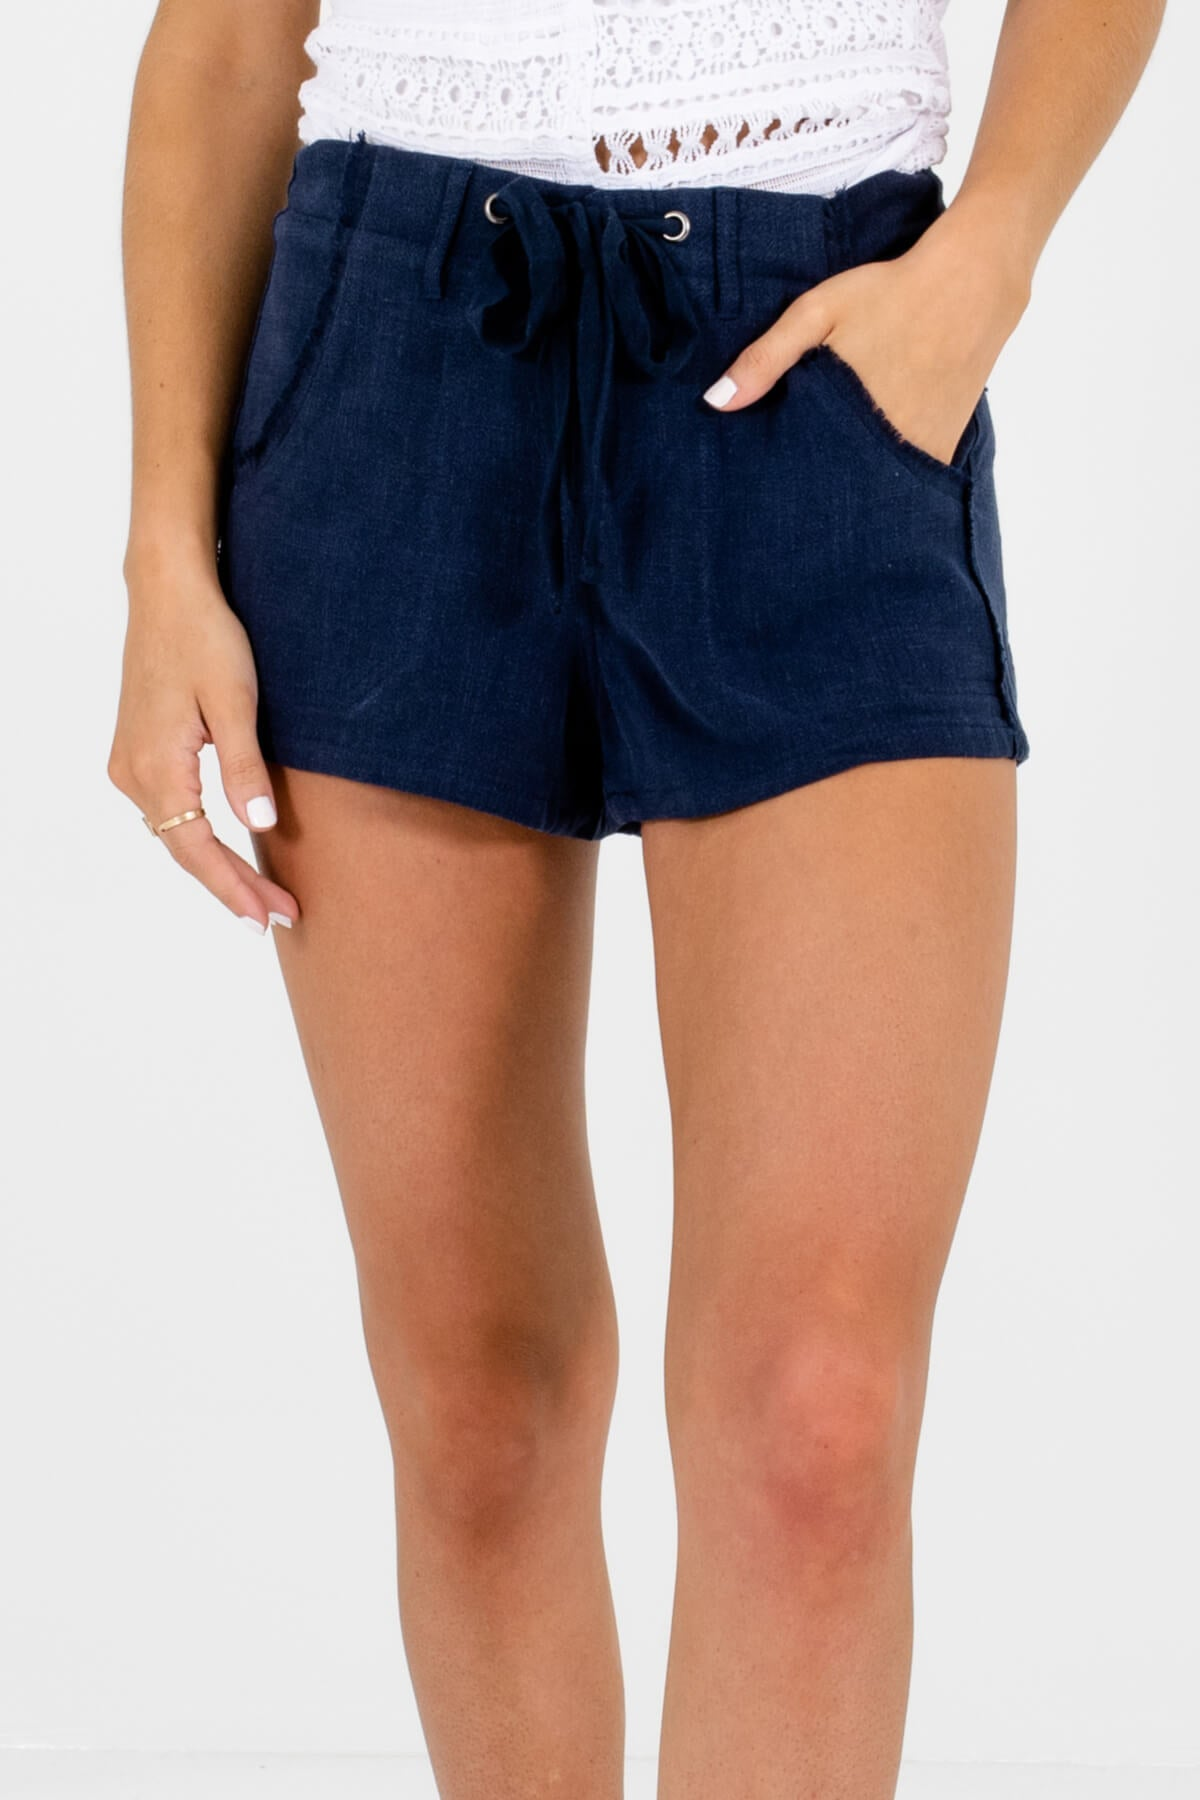 Navy Blue High-Quality Boutique Shorts for Women